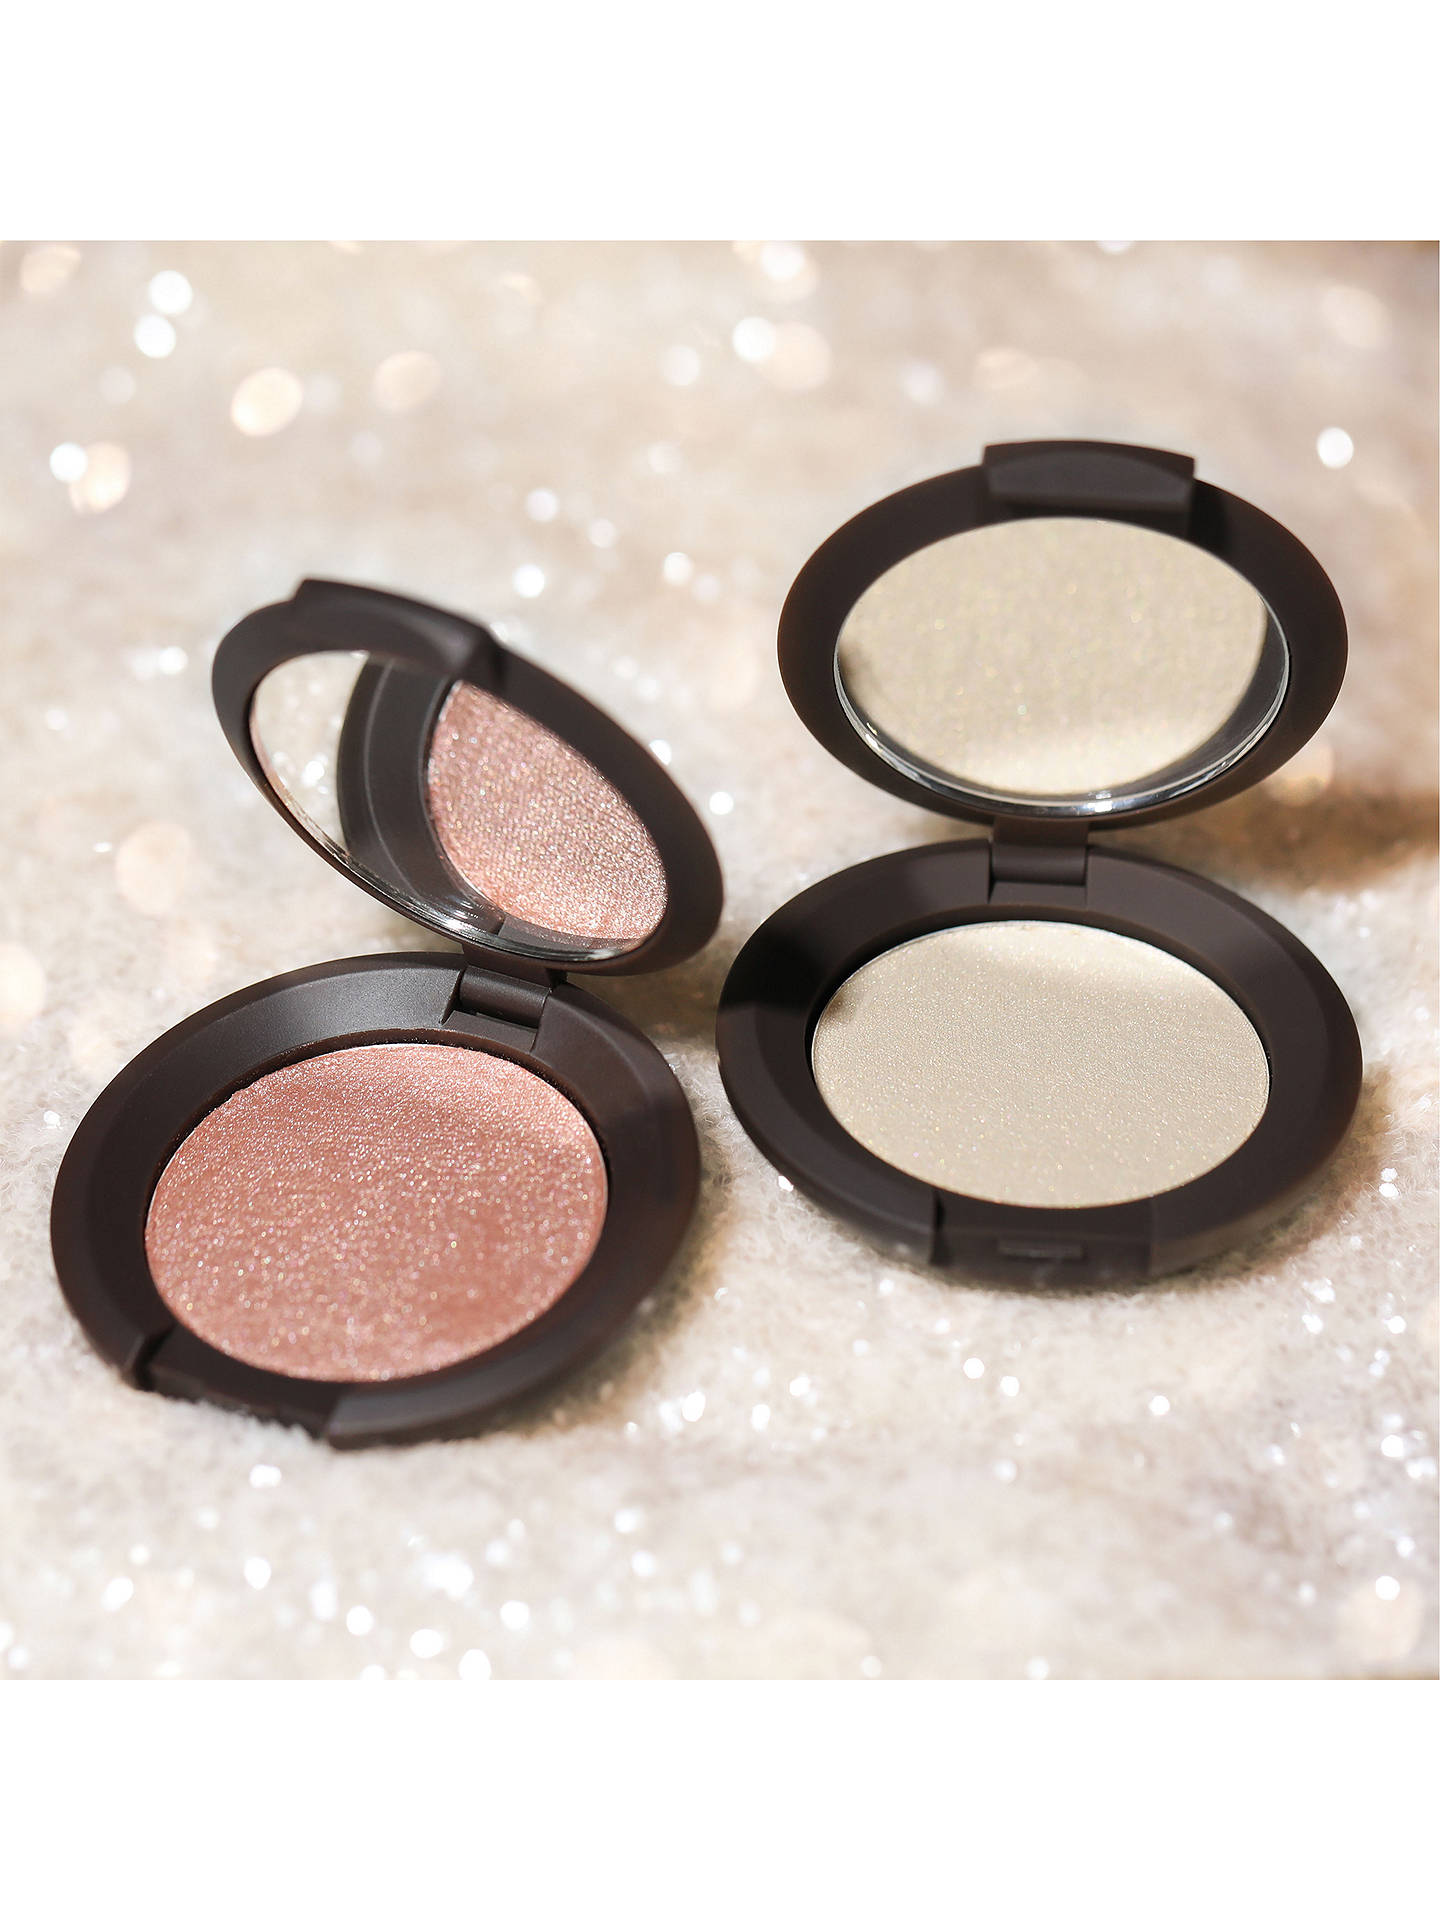 BuyBECCA Shimmering Skin Perfector™ Pressed Highlighter Mini, Champagne Pop Online at johnlewis.com